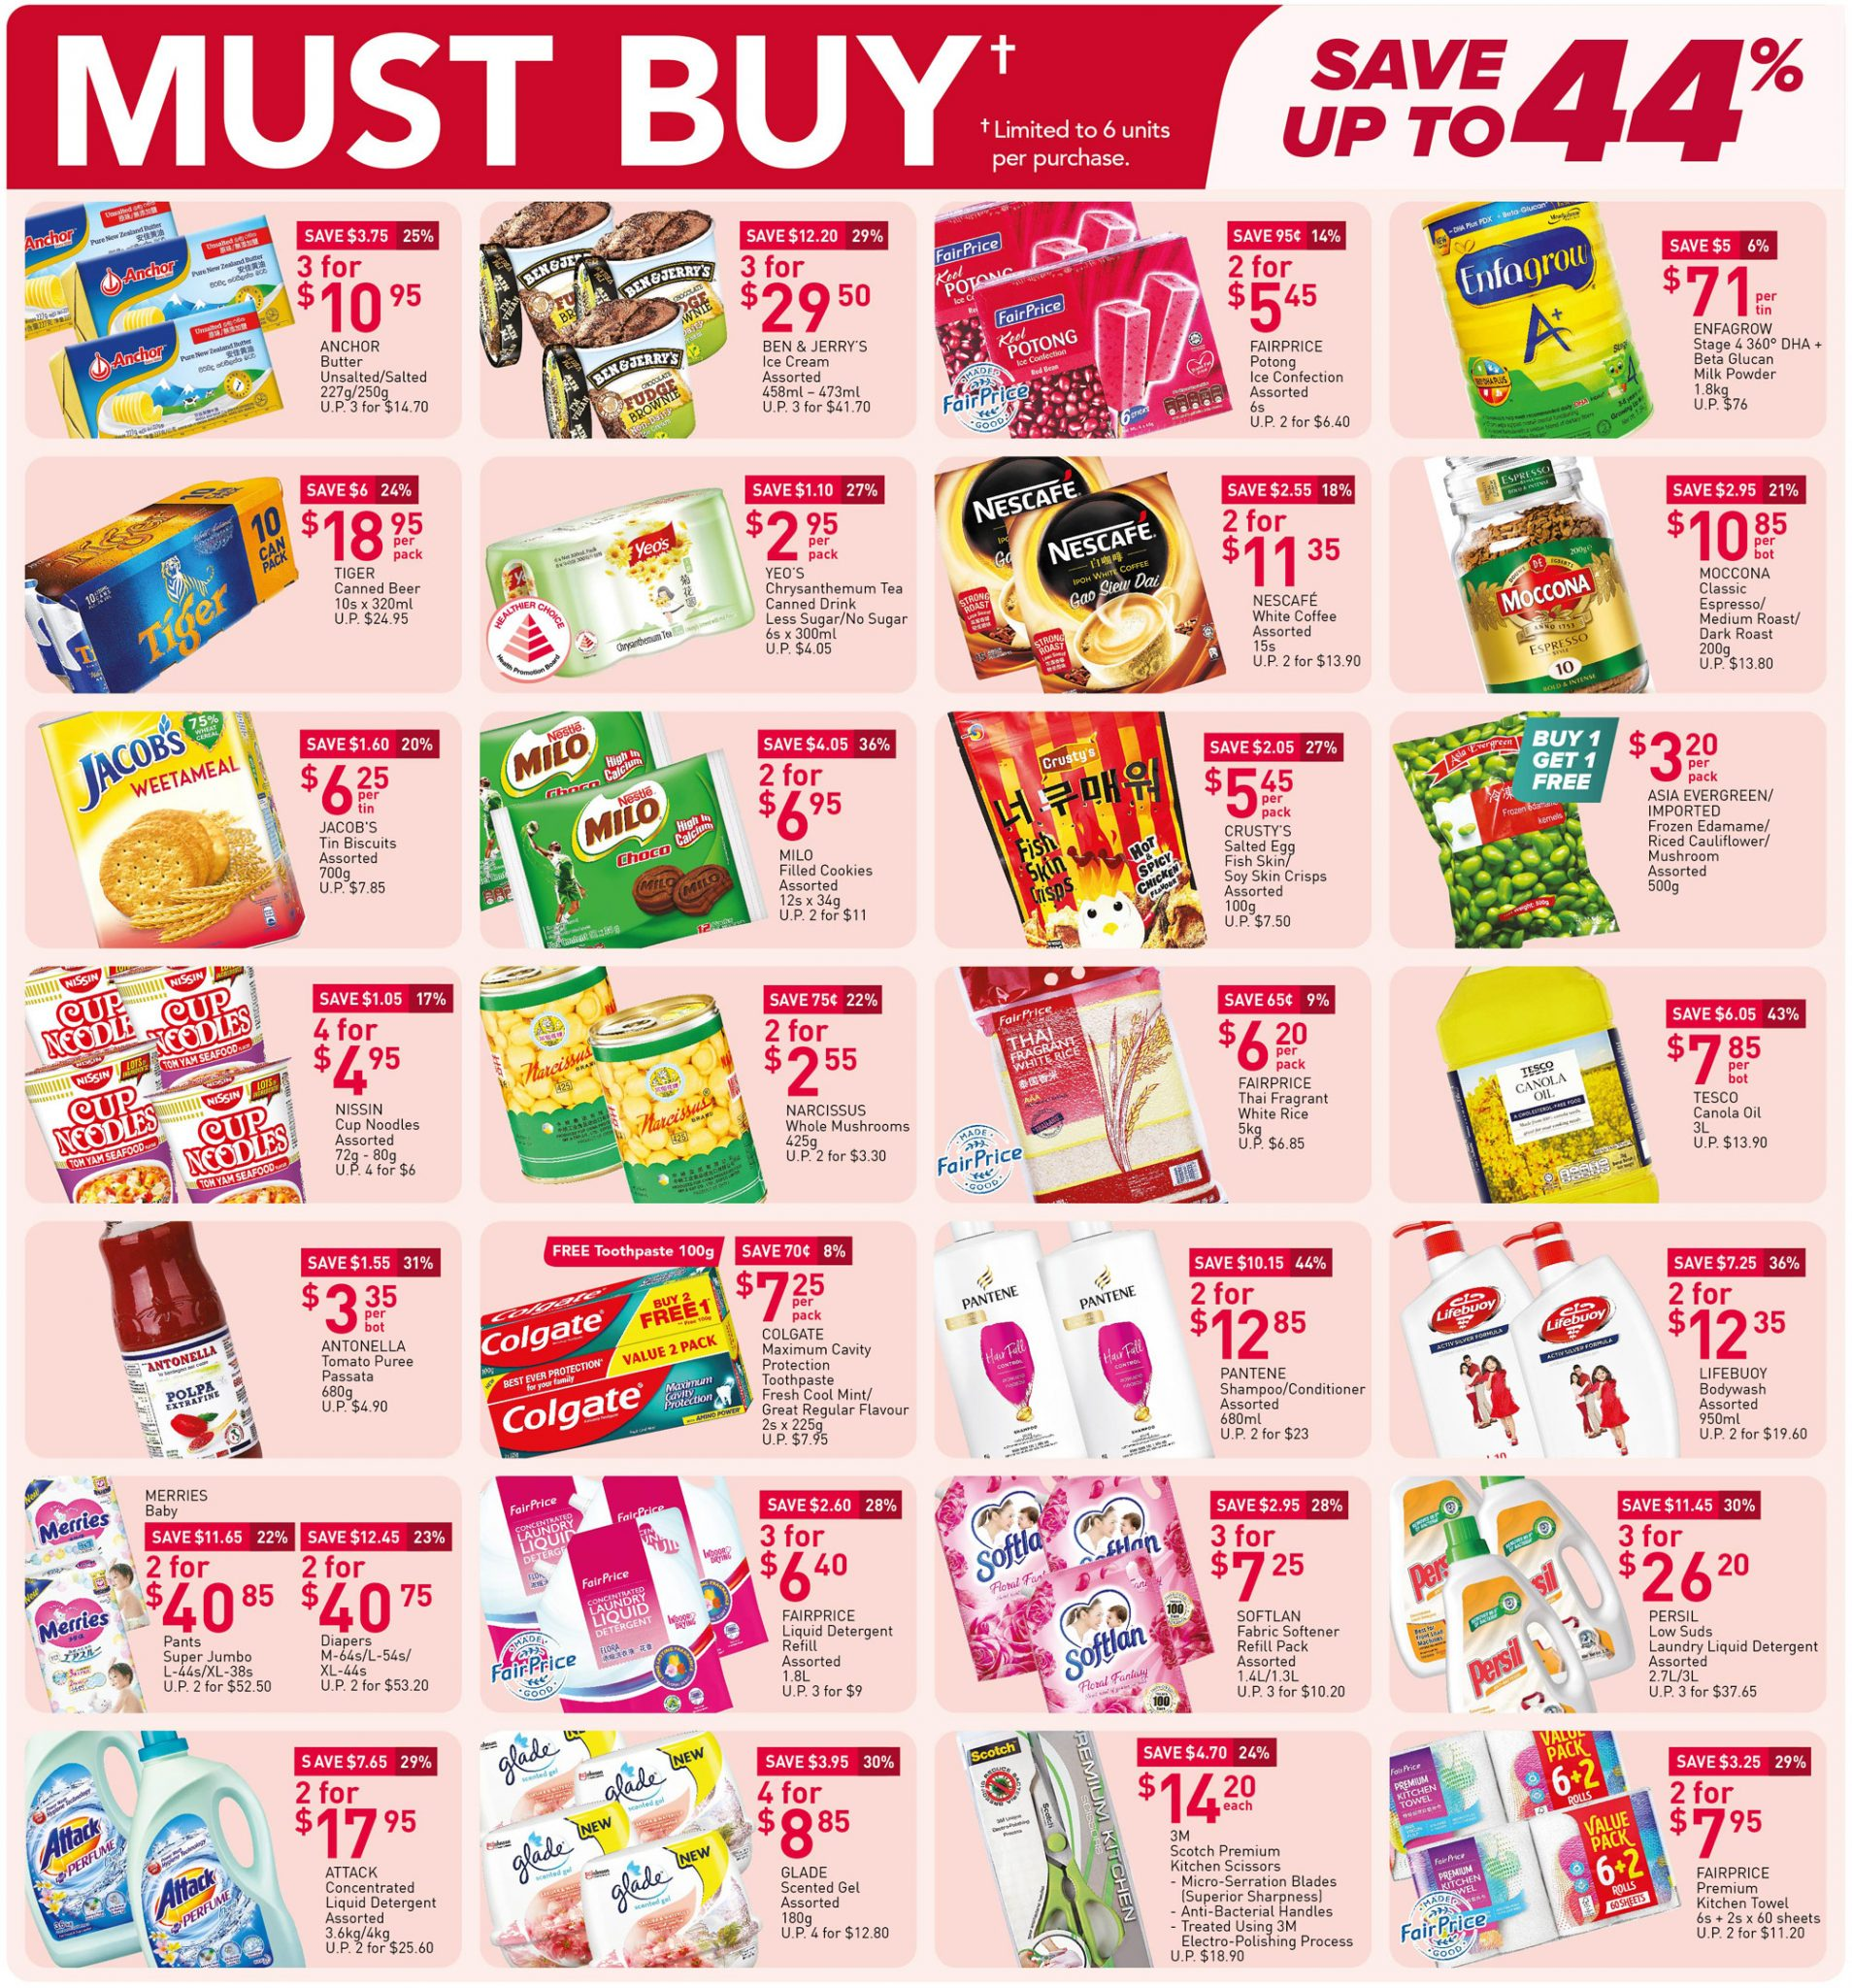 Must-buy items from now till 21 April 2021